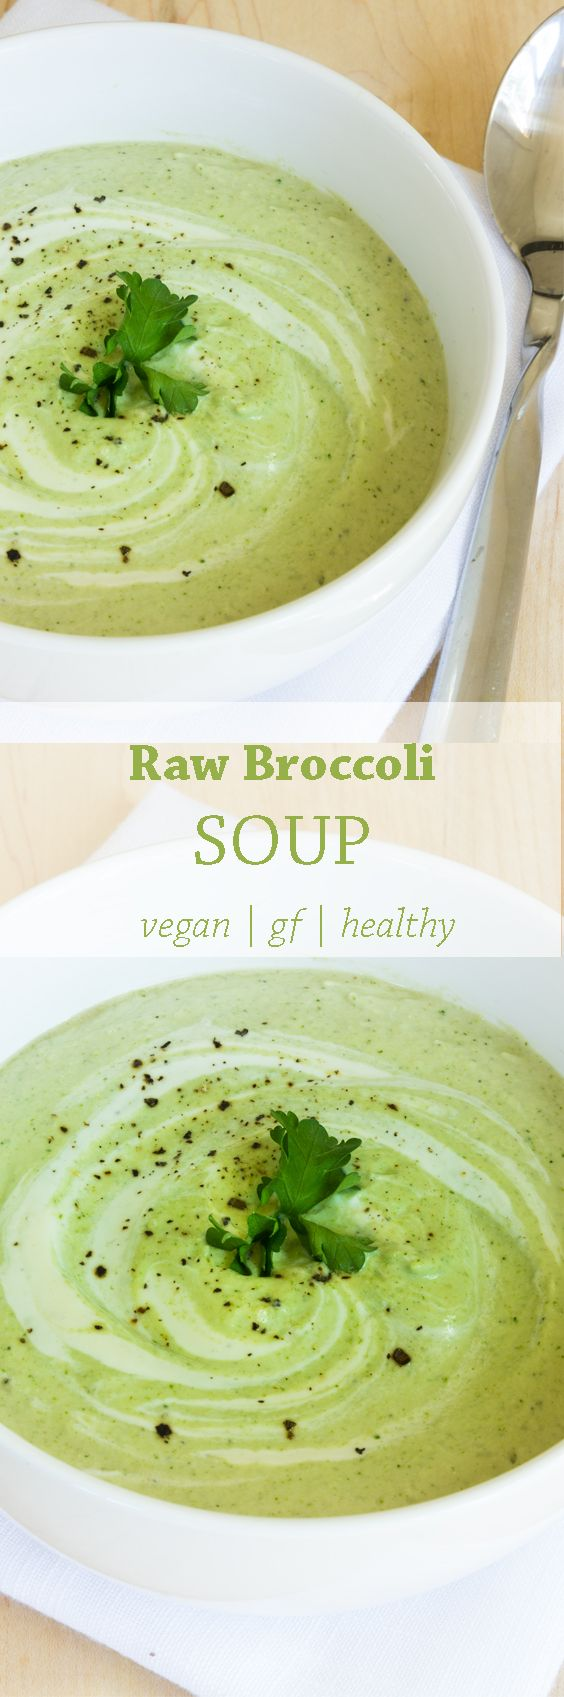 This Raw Broccoli Soup is thick, creamy, nutty and very un-raw-broccoli-like. It's not hot, but it's not cold either because the blending process warms the soup up. You'll be amazed at how mouth-watering and delectable this Raw Cream of Broccoli is.